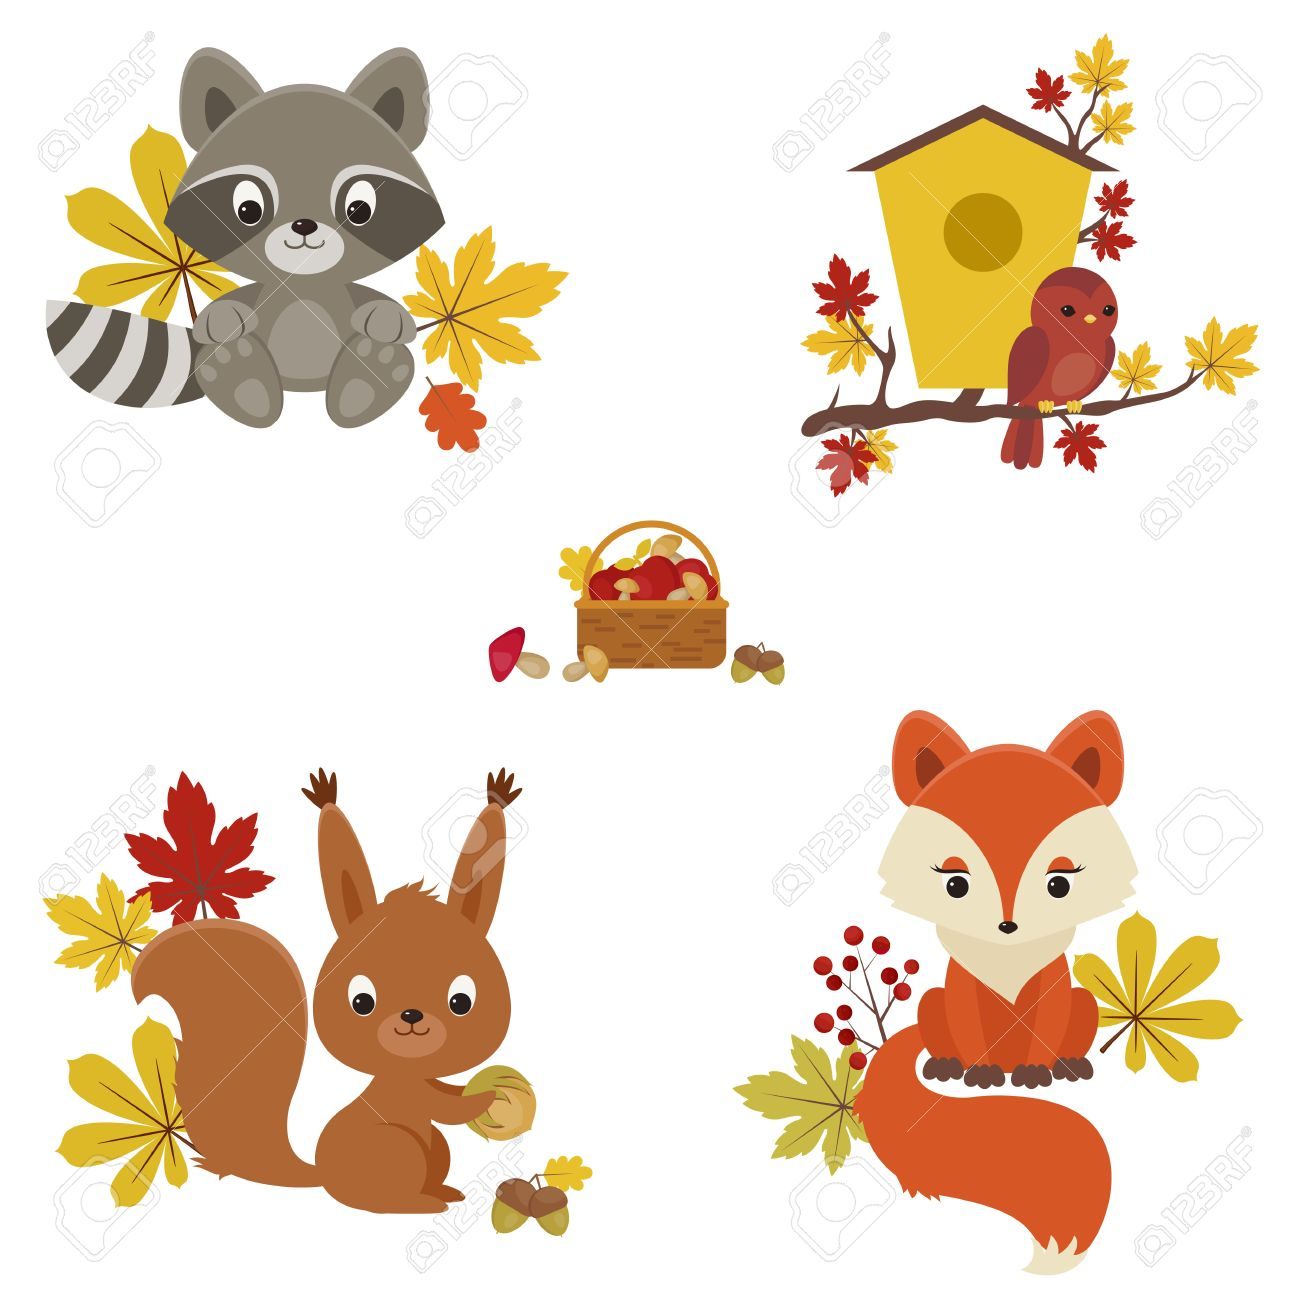 Image result for squirrels and raccoons clipart